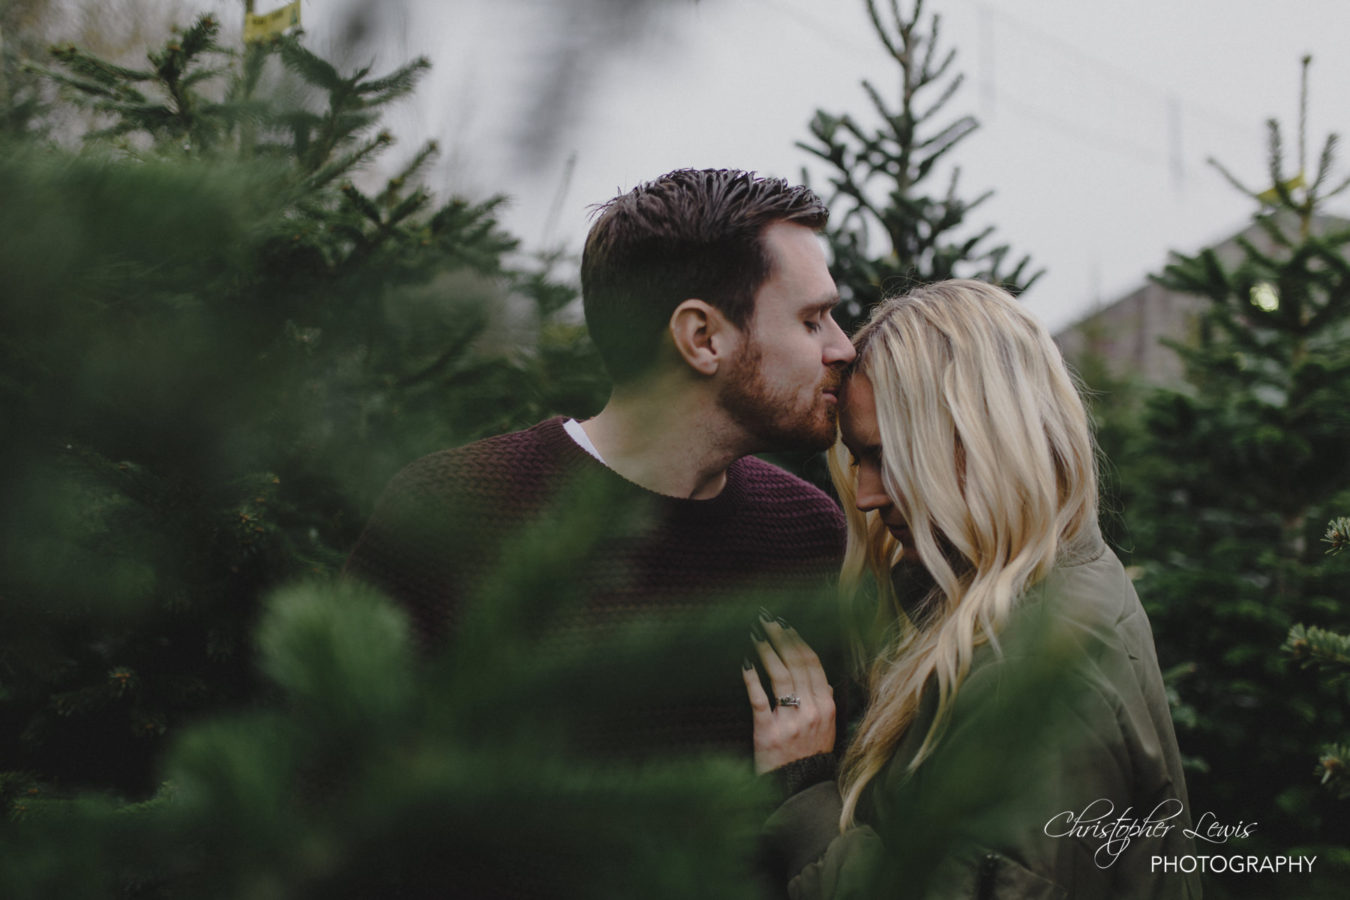 Christmas Pre-Wedding Photography 5